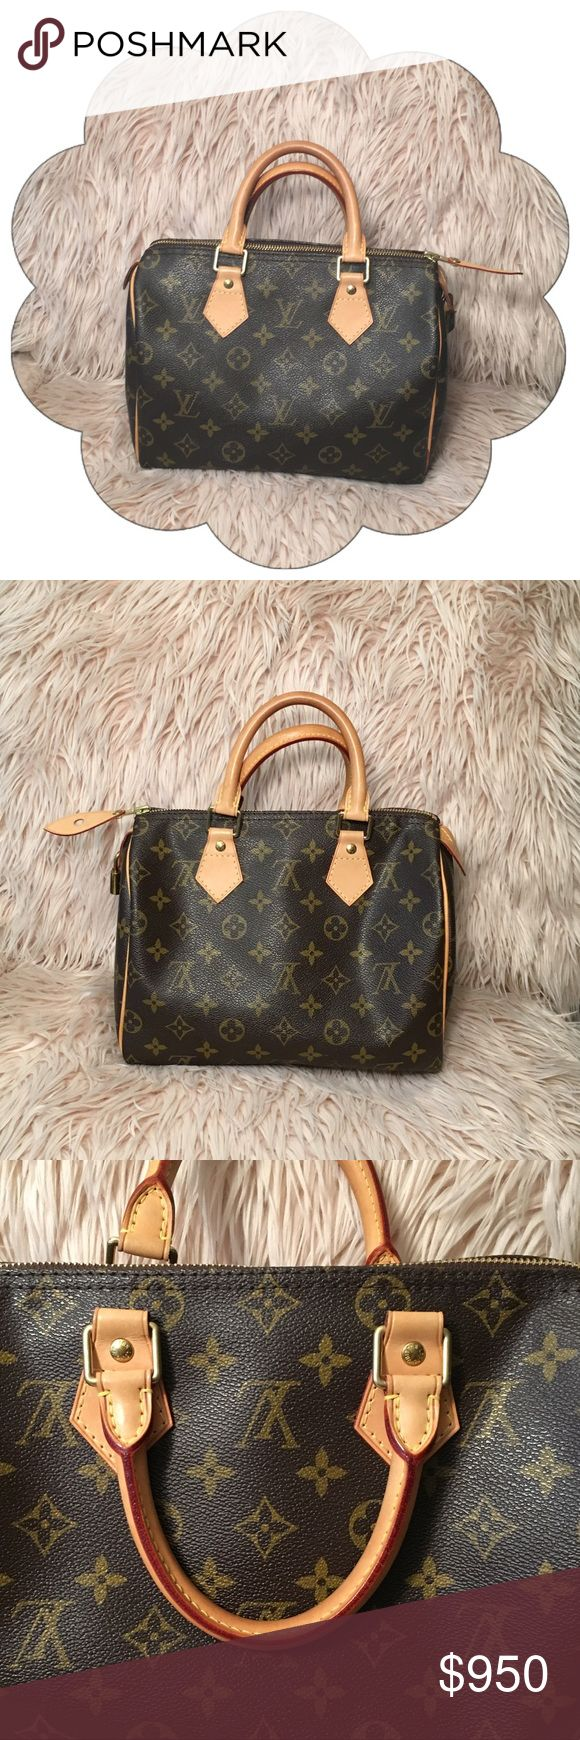 """Authentic Louis Vuitton Speedy 25 Monogram Canvas PRICE FIRM 100% Authentic Louis Vuitton : Date Code SD3099 : Monogram Canvas & Leather : 9.8"""" x 7.5"""" x 5.9"""" : ALMOST LIKE NEW (no stains inside or out & handles are barely starting to patina) : Bag, lock & dustbag included (Original Louis Vuitton Dustbag included, just not pictured) : Original Price $950 NO BUNDLE DISCOUNT NO TRADES Louis Vuitton Bags Satchels"""